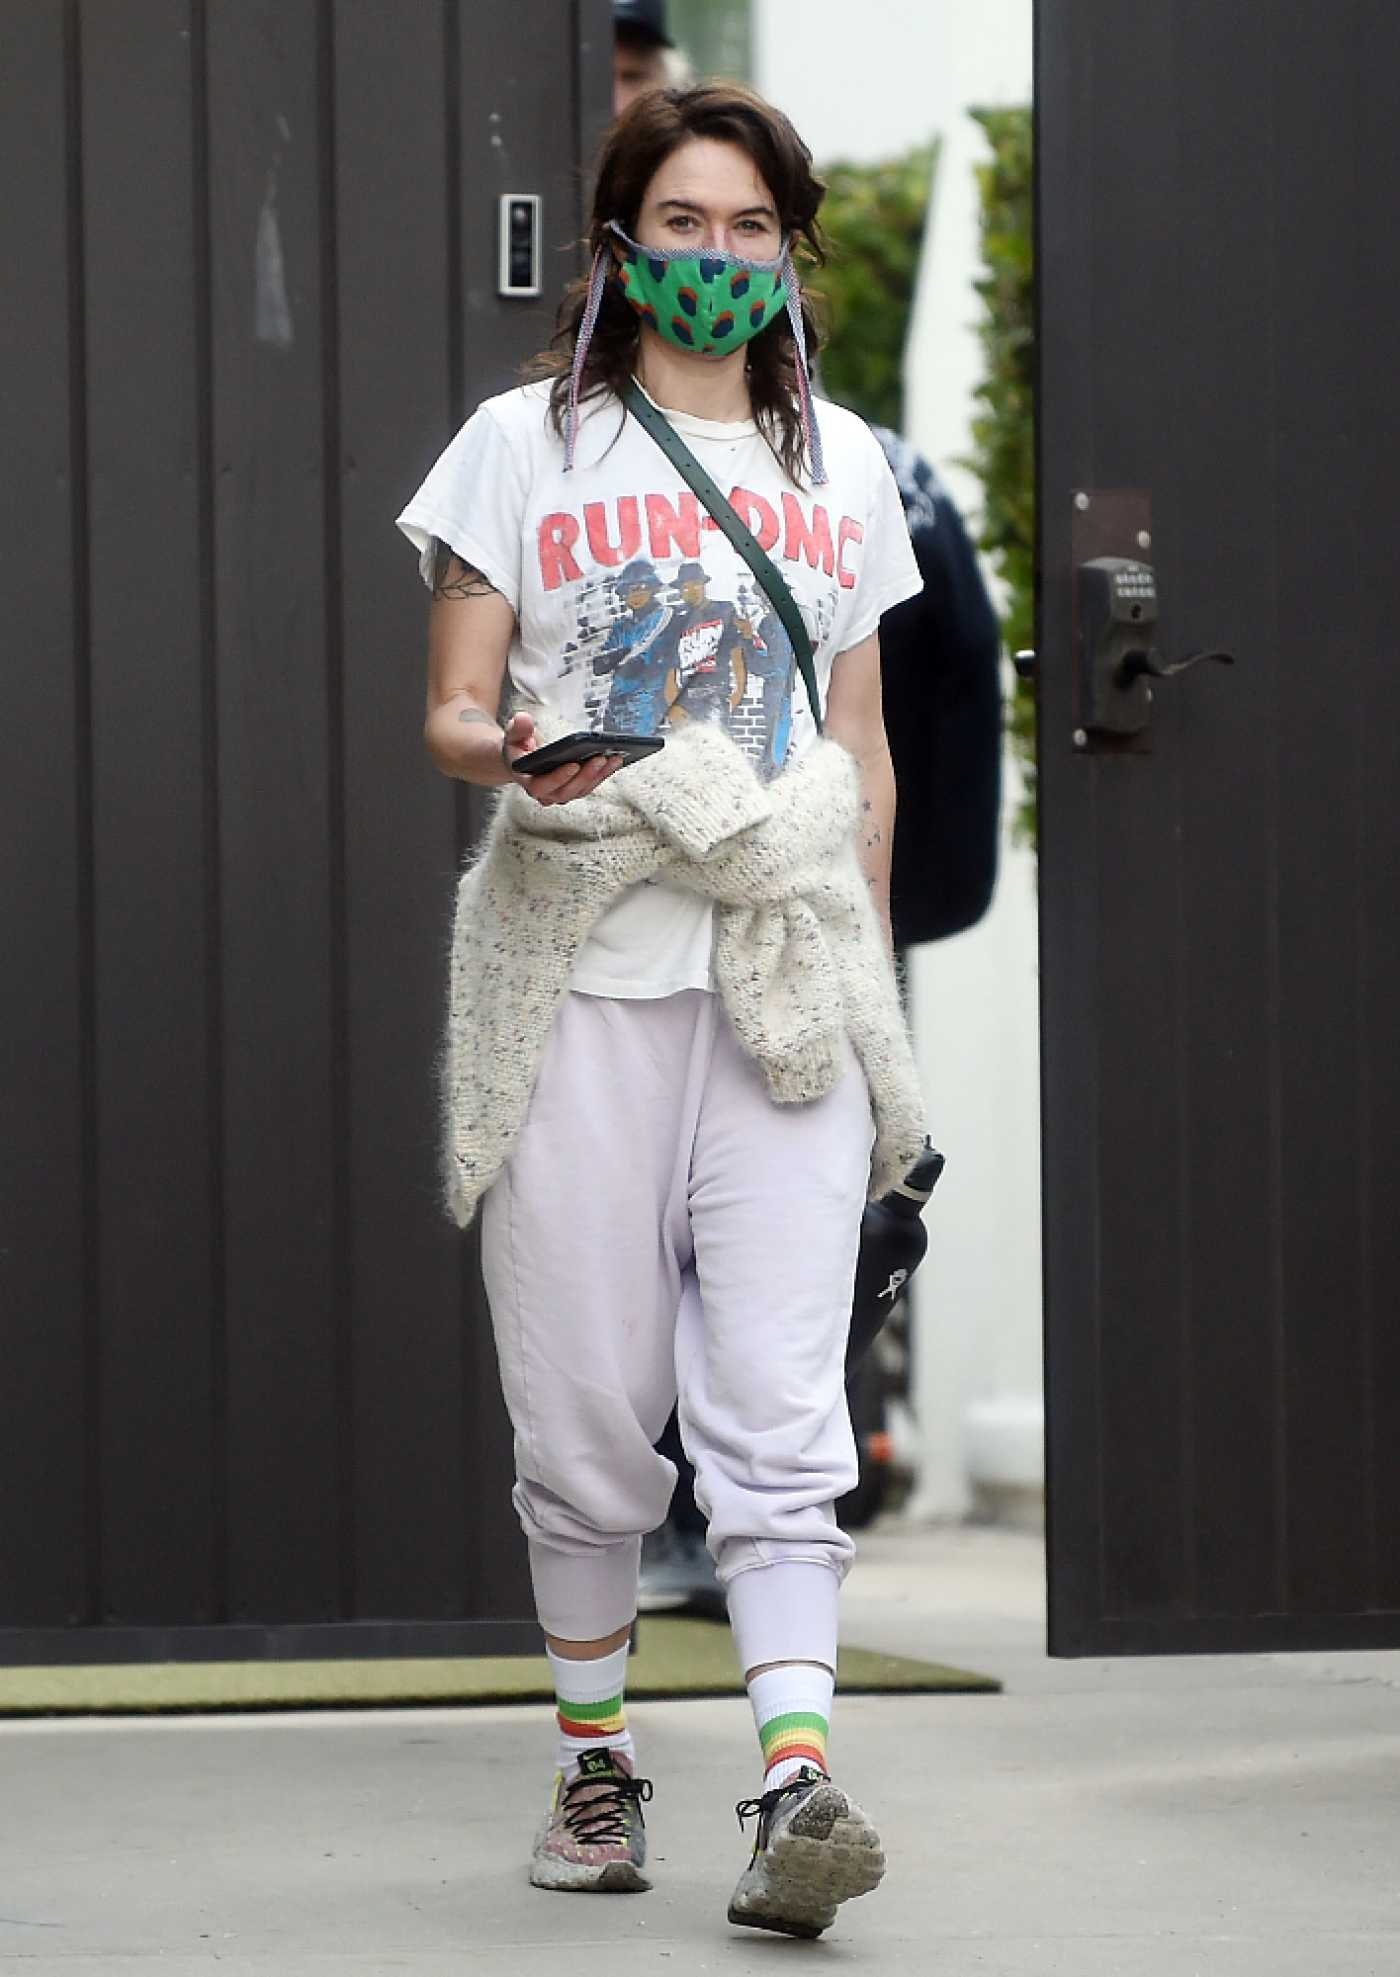 Lena Headey in a White Tee Arrives to the Gym with Her Boyfriend Marc Menchaca in Los Angeles 01/22/2021